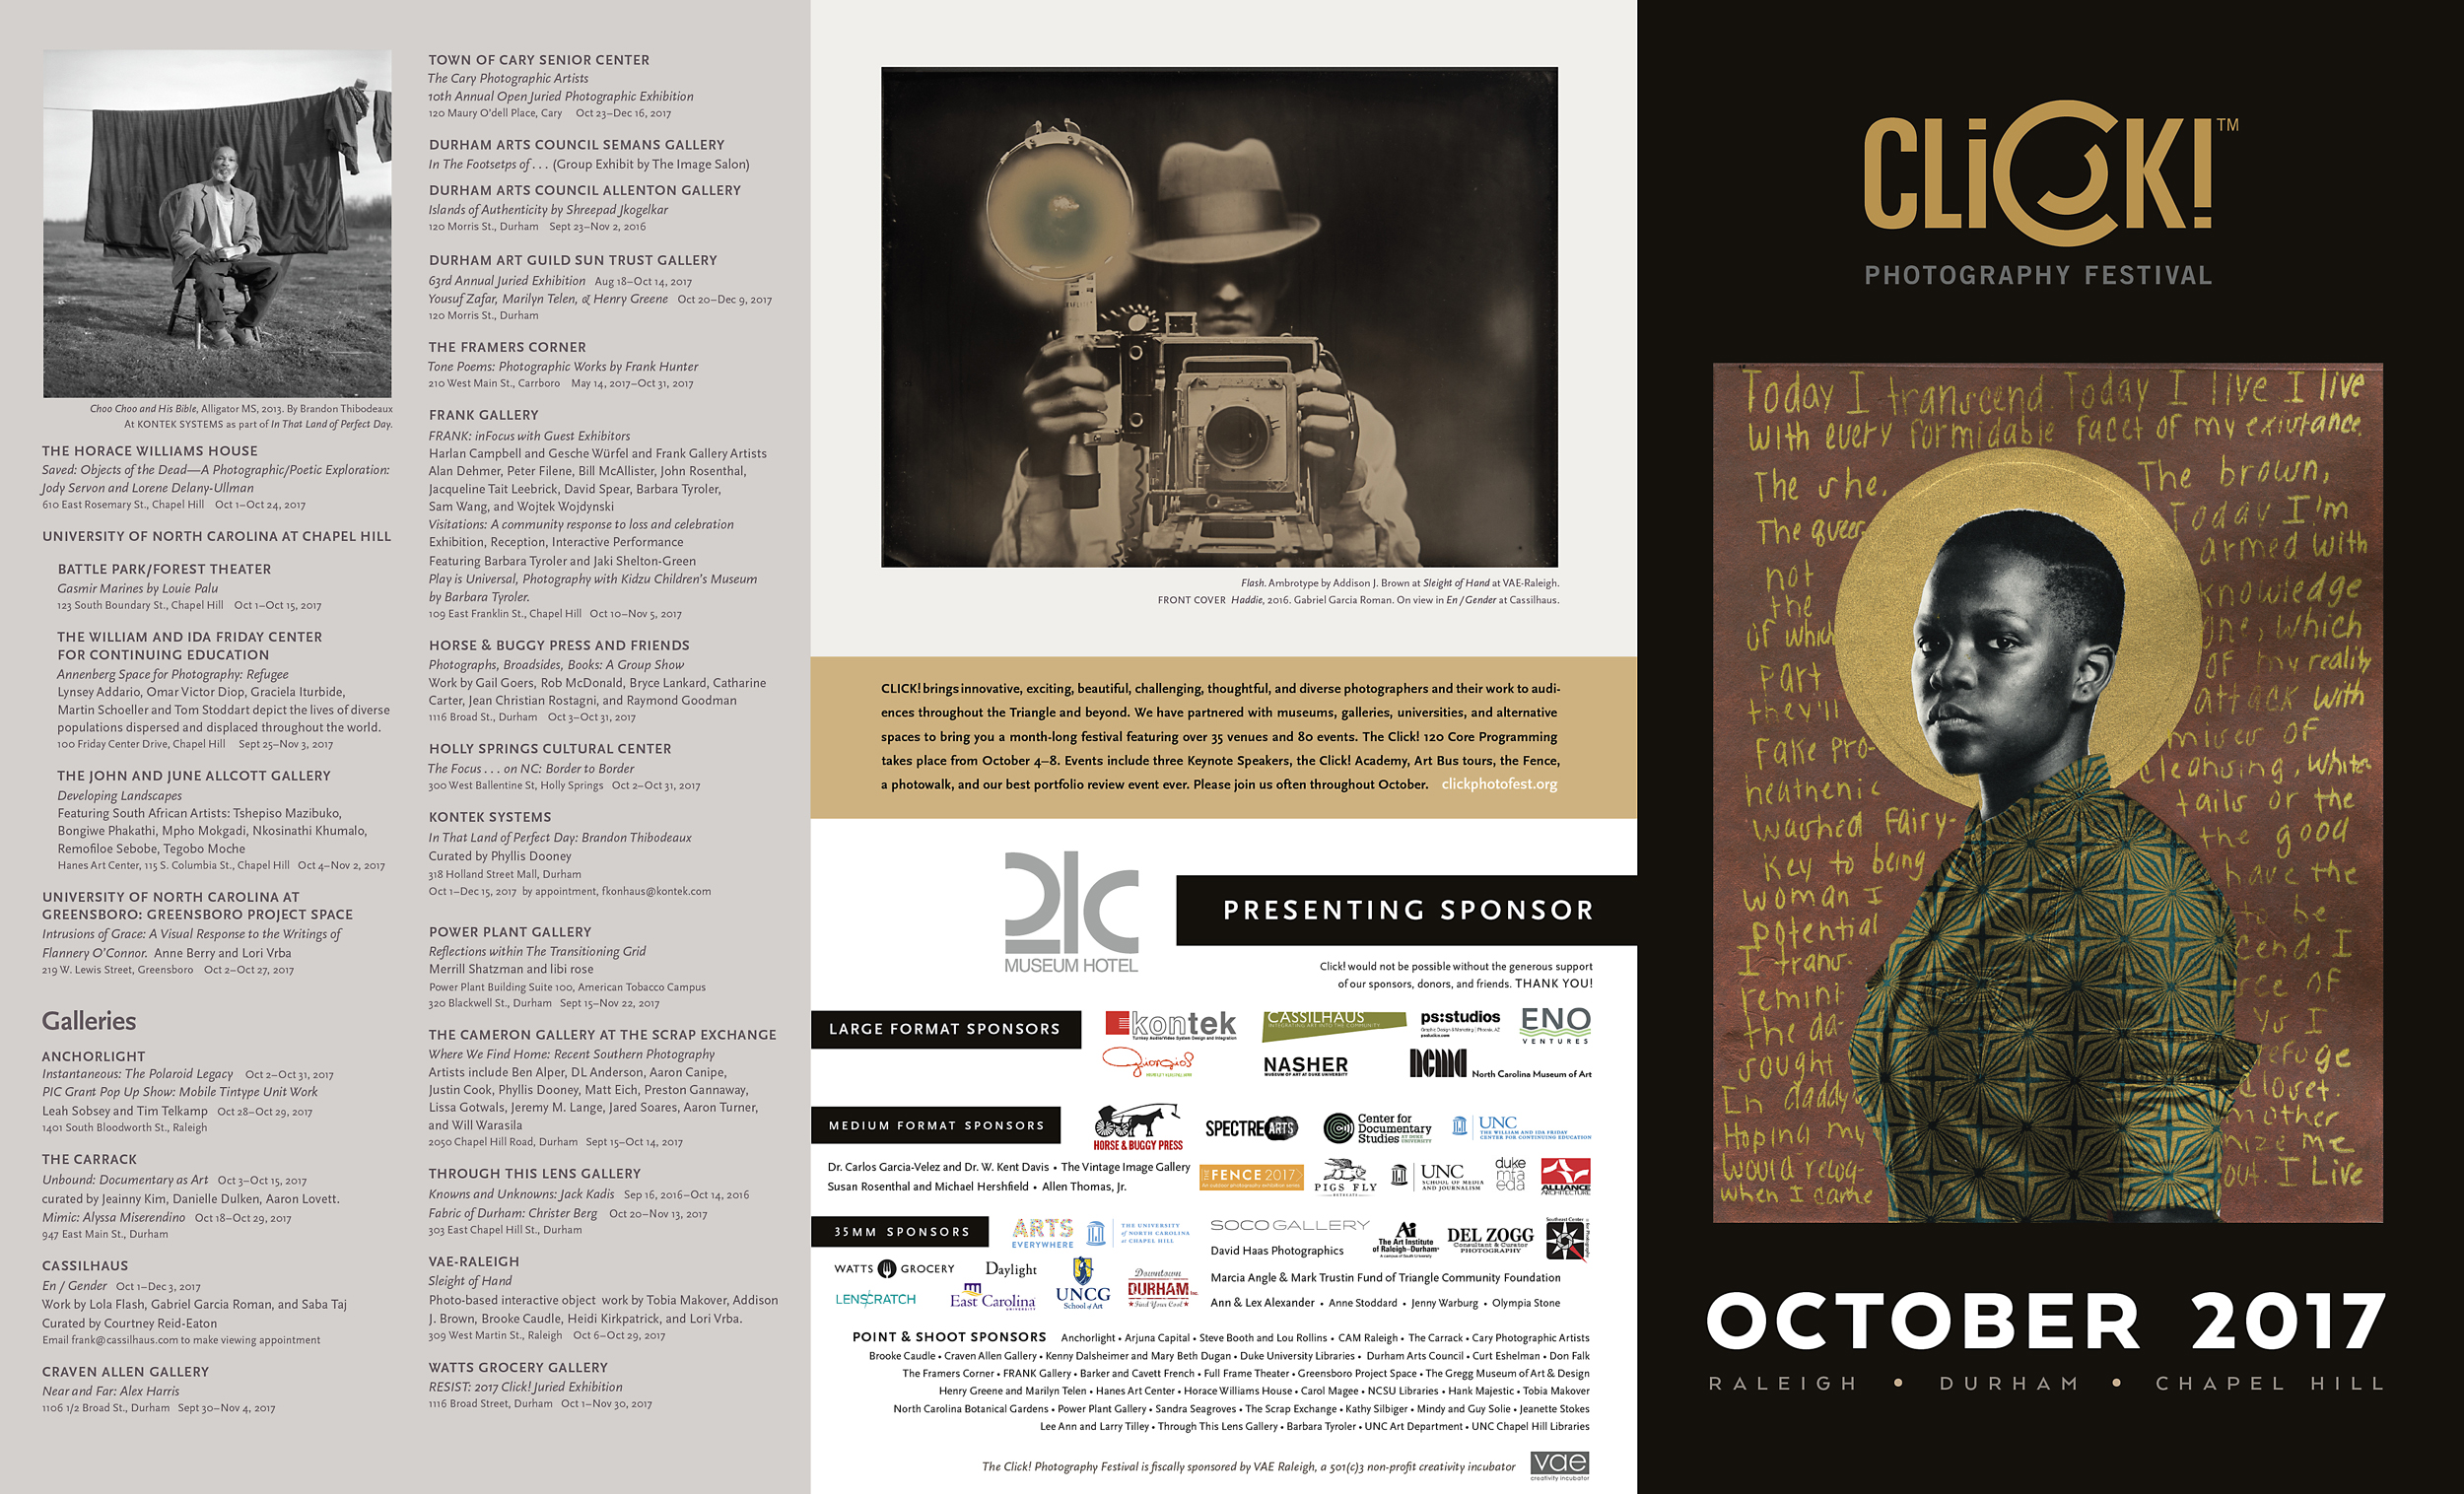 Unfolded program guide from the photography festival (which we co-sponsor).